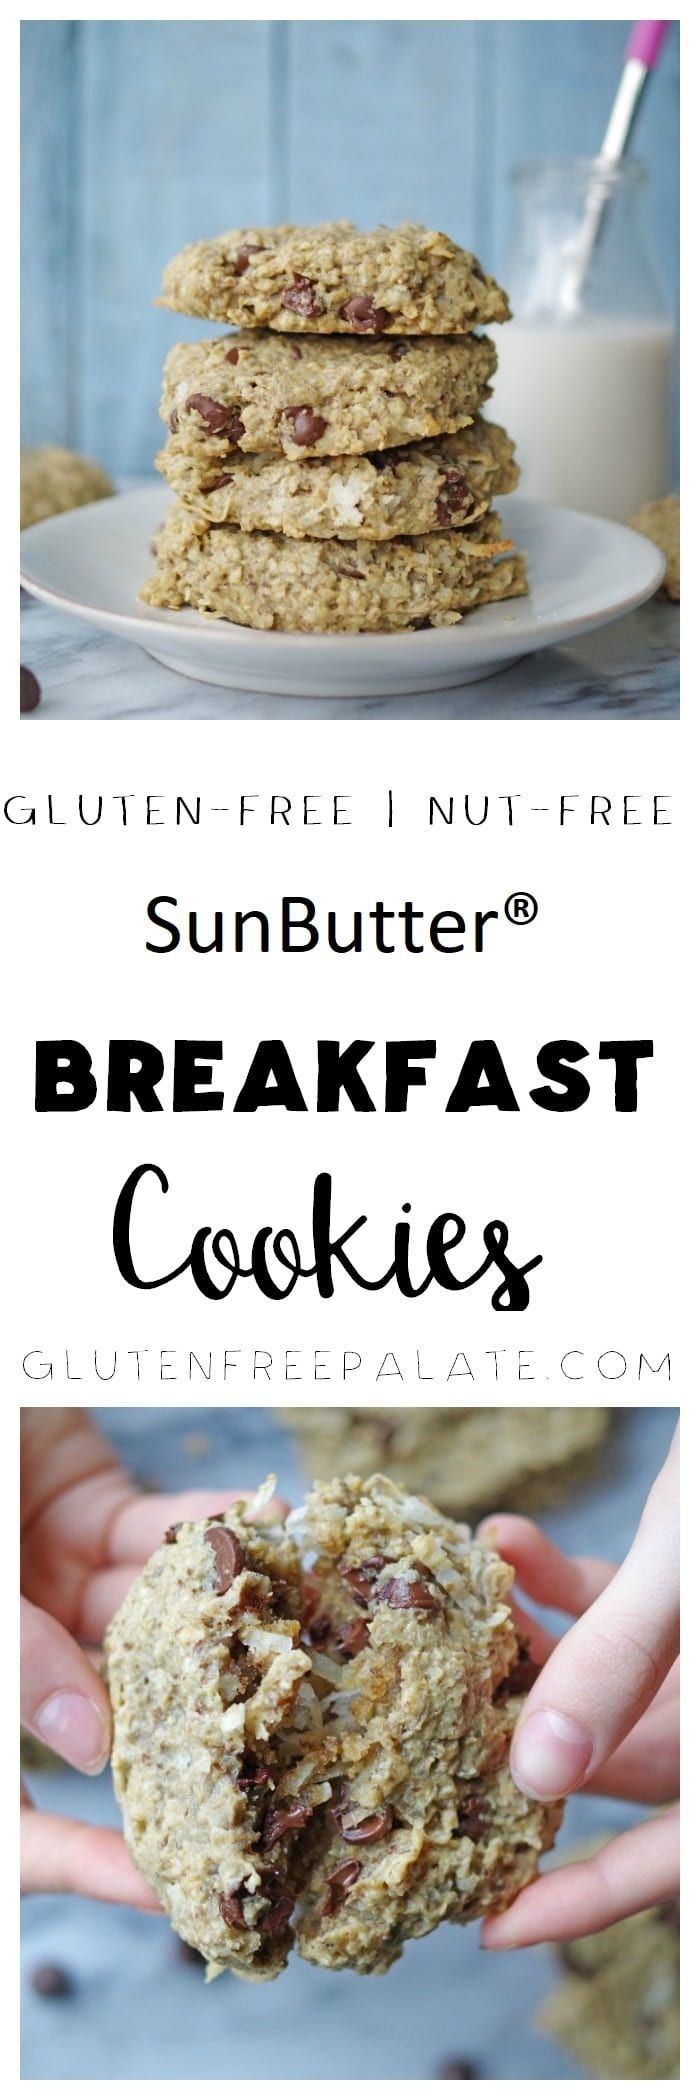 Looking for a quick grab-and-go breakfast? These Gluten-Free SunButter® Breakfast Cookies are healthy and filling. via @gfpalate